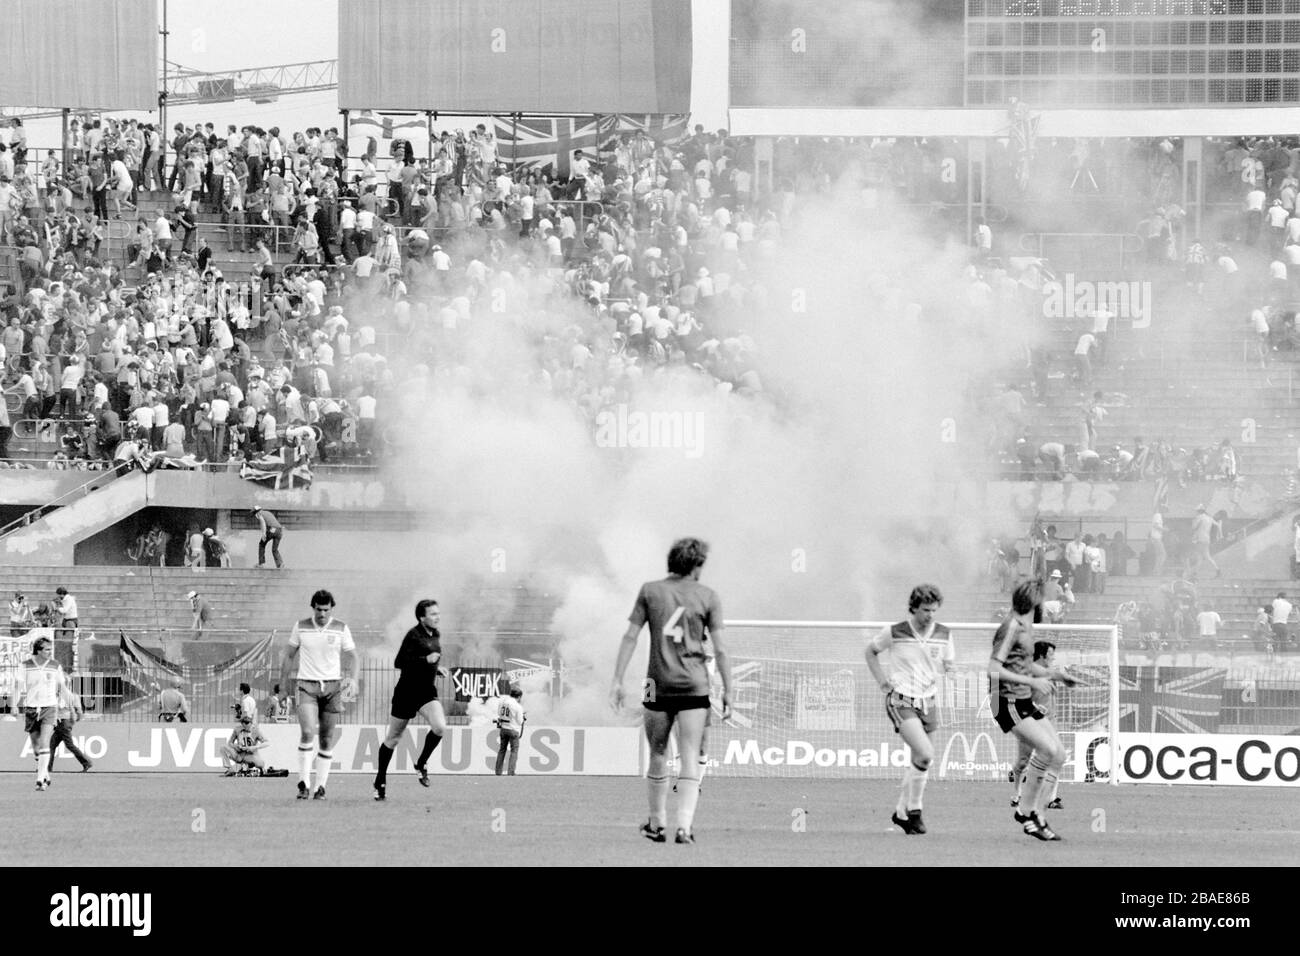 Clouds of tear gas rise from the terraces behind the England goal as Italian riot police try to control the hooligan element amongst the England following Stock Photo